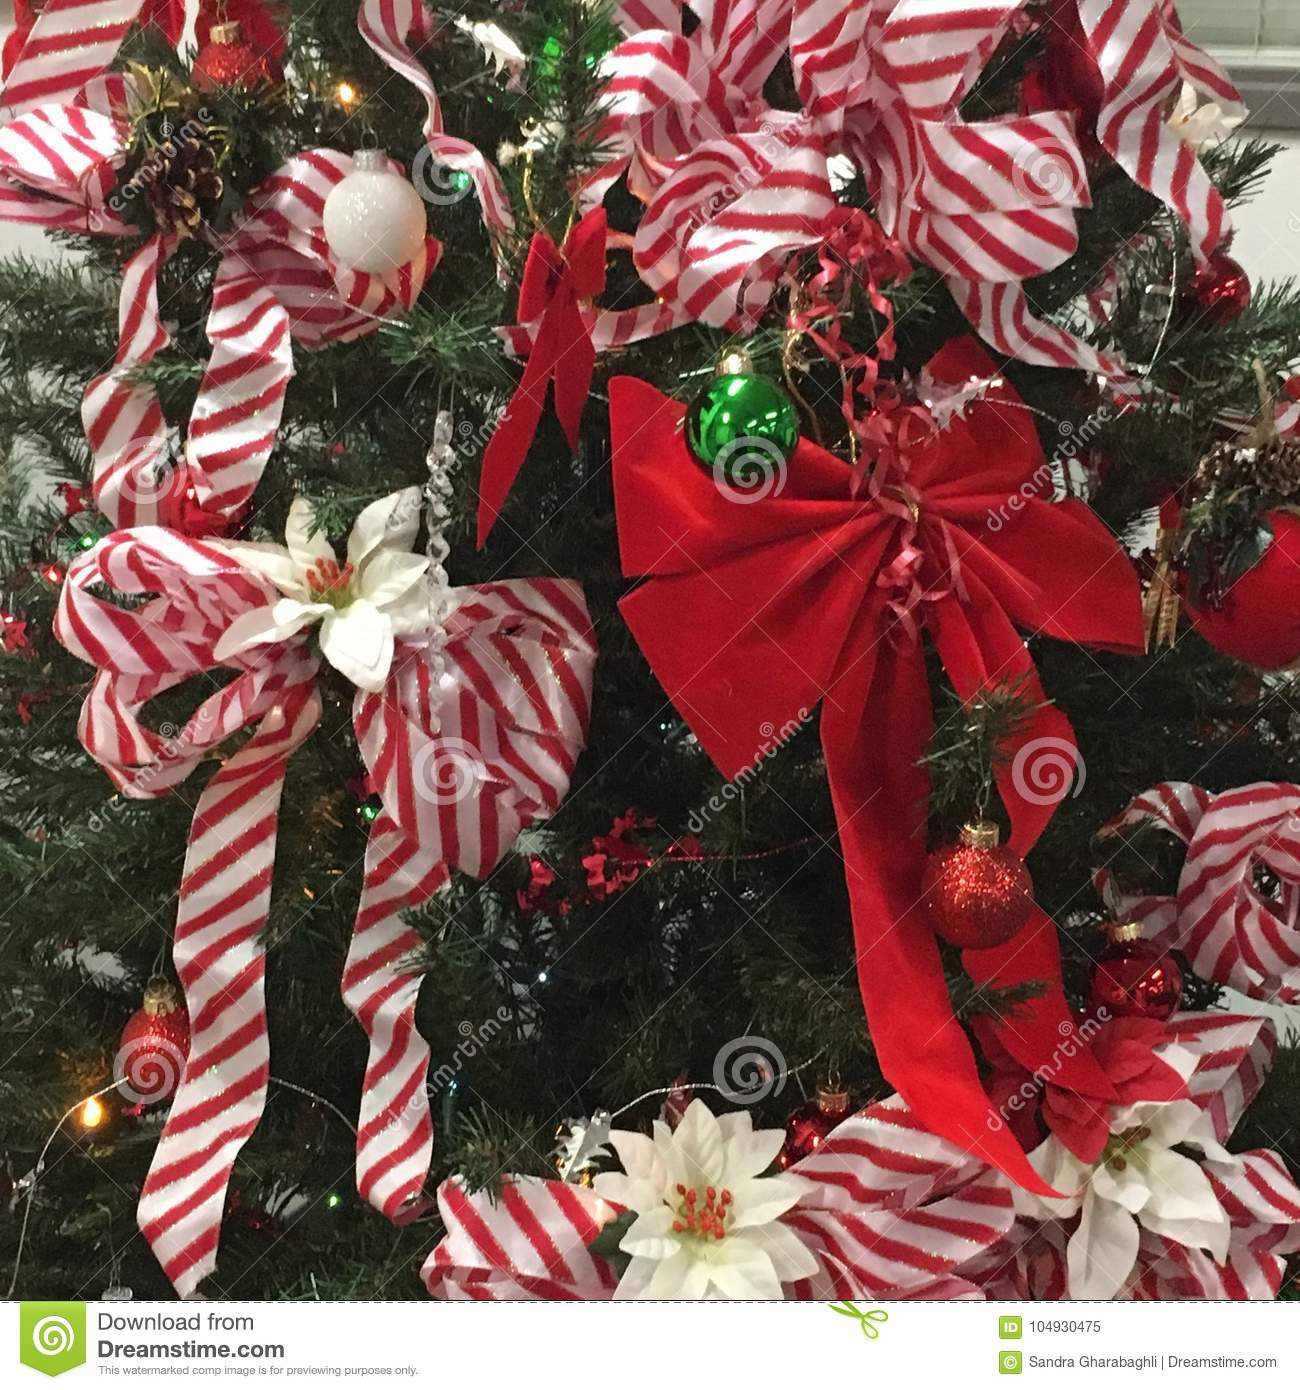 Christmas Tree Bows White.Christmas Trees With Bows Stock Image Image Of White